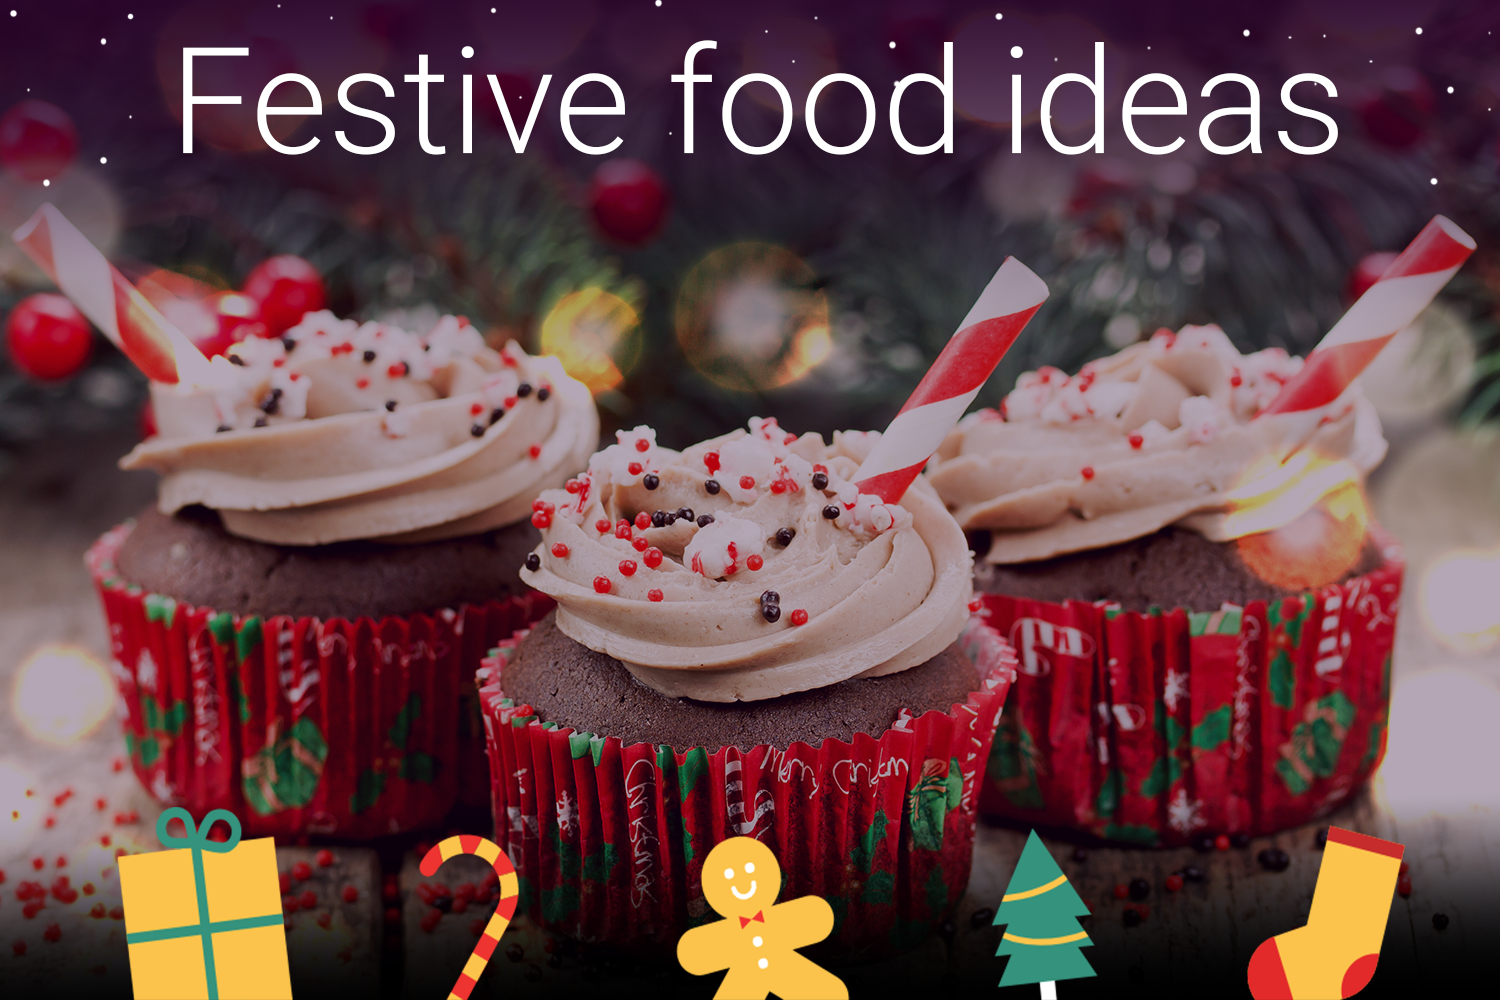 Feel festive with fab food offers